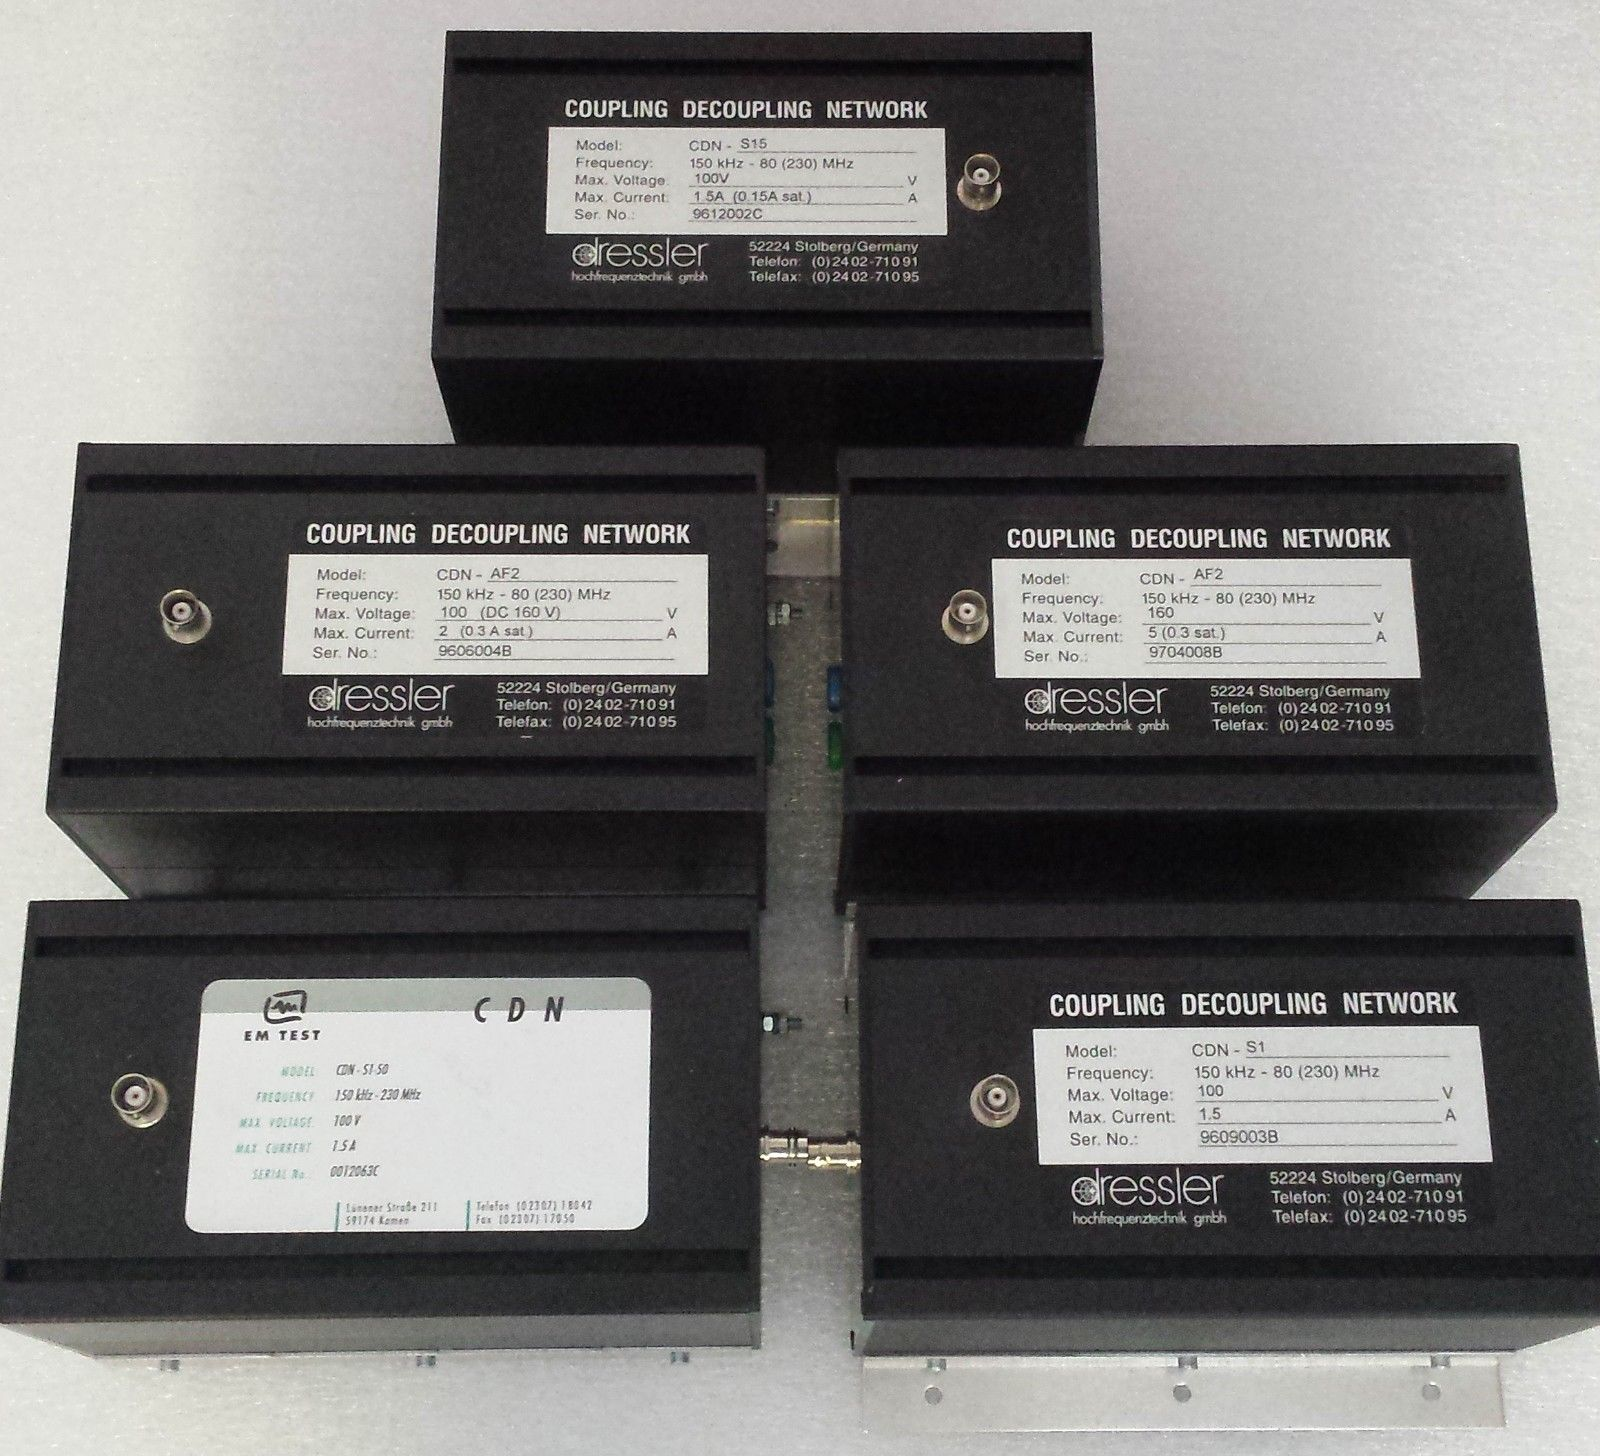 dressler-coupling-decoupling-network-cdn-s15-af2-s1-s1-50-for-emc-testing-0.jpg